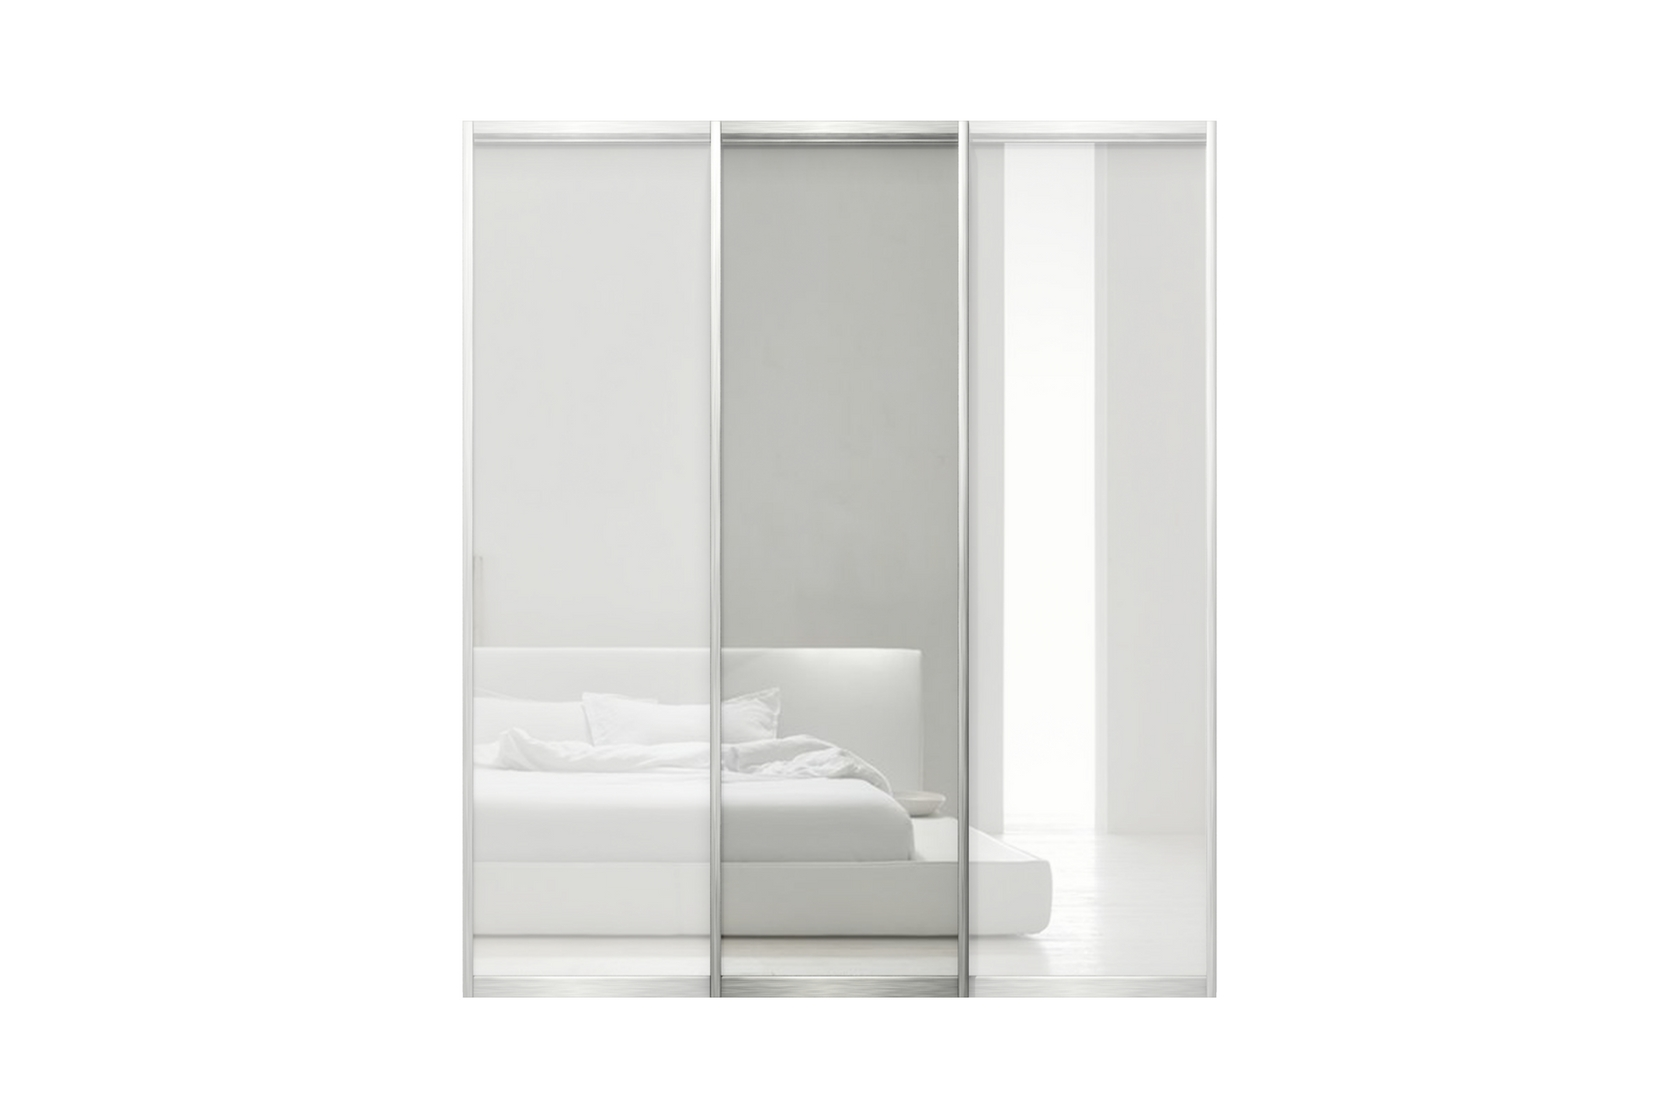 Interior Mirror Sliding Door 48 x 80\